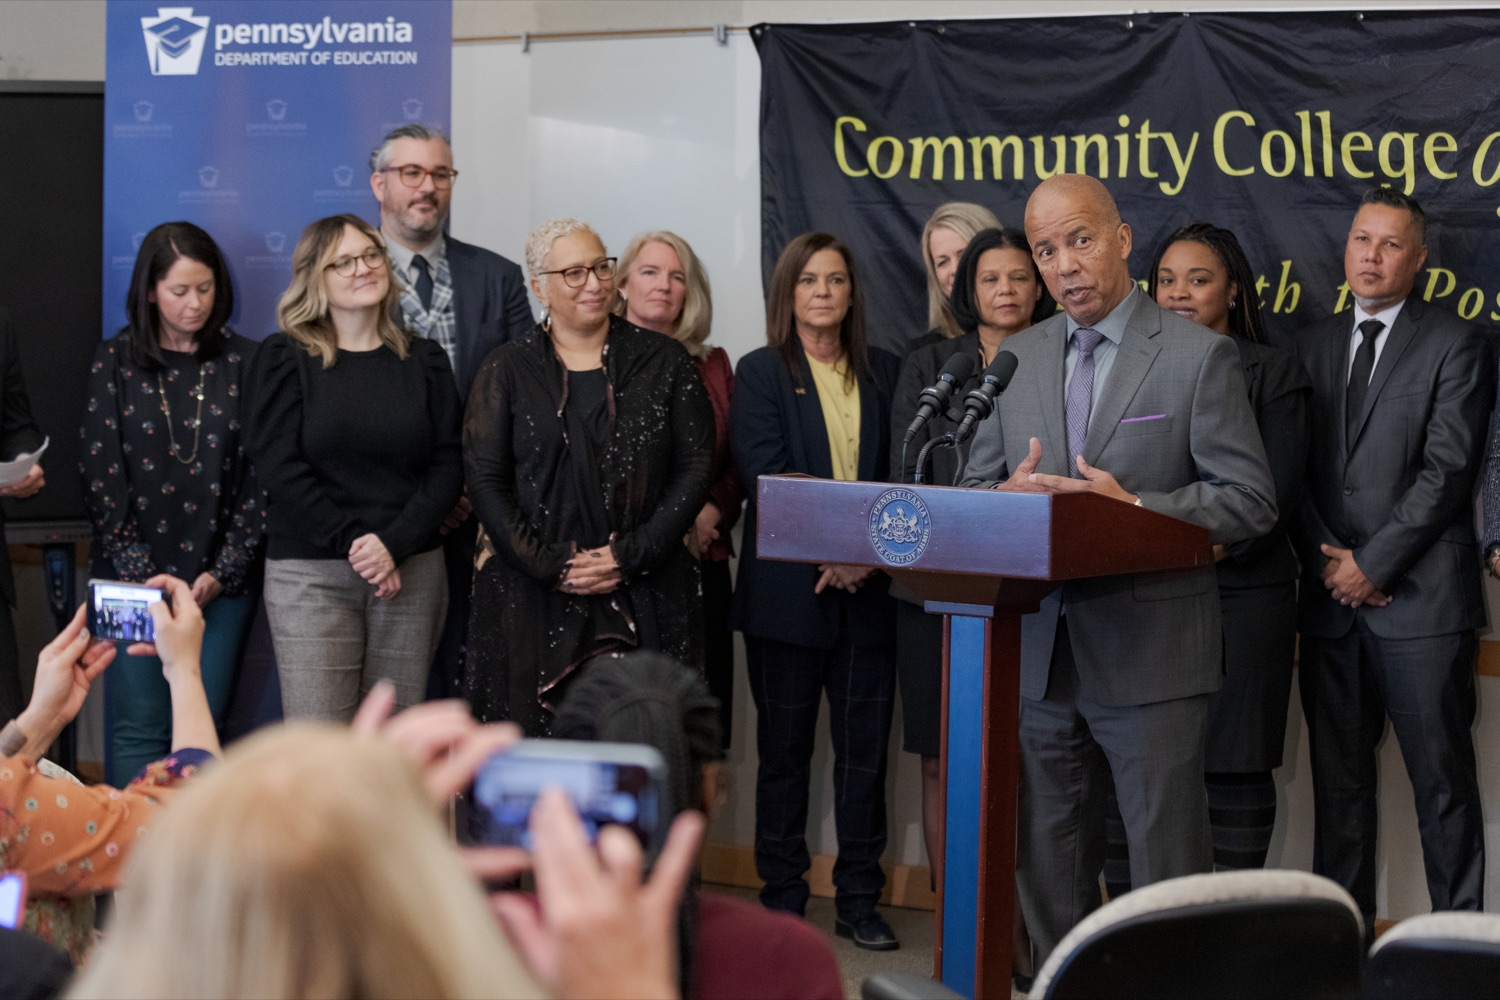 "<a href=""http://filesource.abacast.com/commonwealthofpa/photo/17592_EDU_Aspiring_NK_009.JPG"" target=""_blank"">⇣ Download Photo<br></a>Dr. Donald Guy Generals, president of the Community College of Philadelphia, speaks during a press conference, announcing the School District of Philadelphia's new pilot program, Aspiring to Educate, that aims to cultivate and diversify the citys educator pool, inside Community College of Philadelphia's Center for Business and Industry on Wednesday, November 20, 2019."